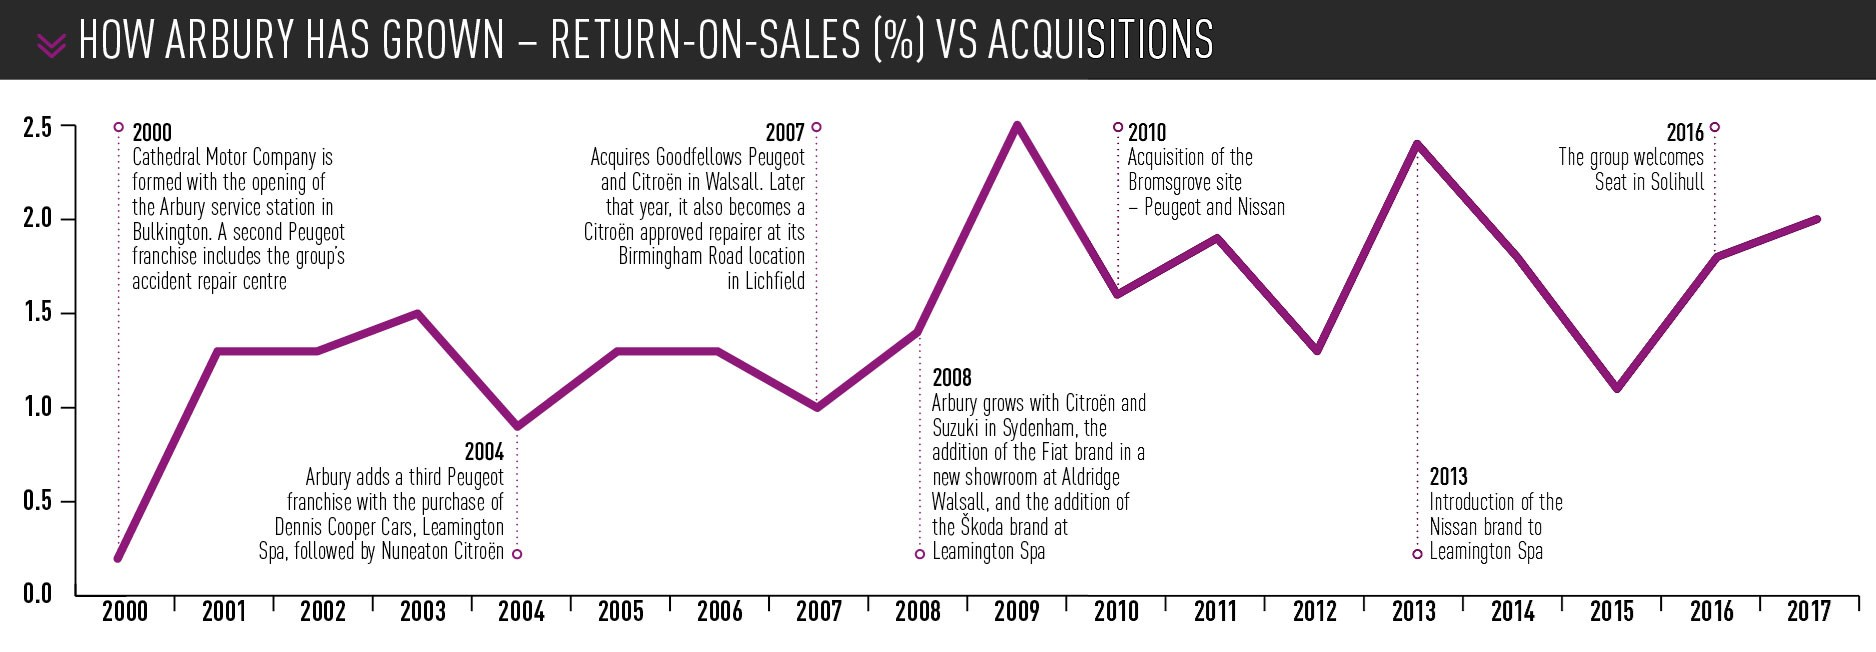 Arbury retun on sales and acquisitions